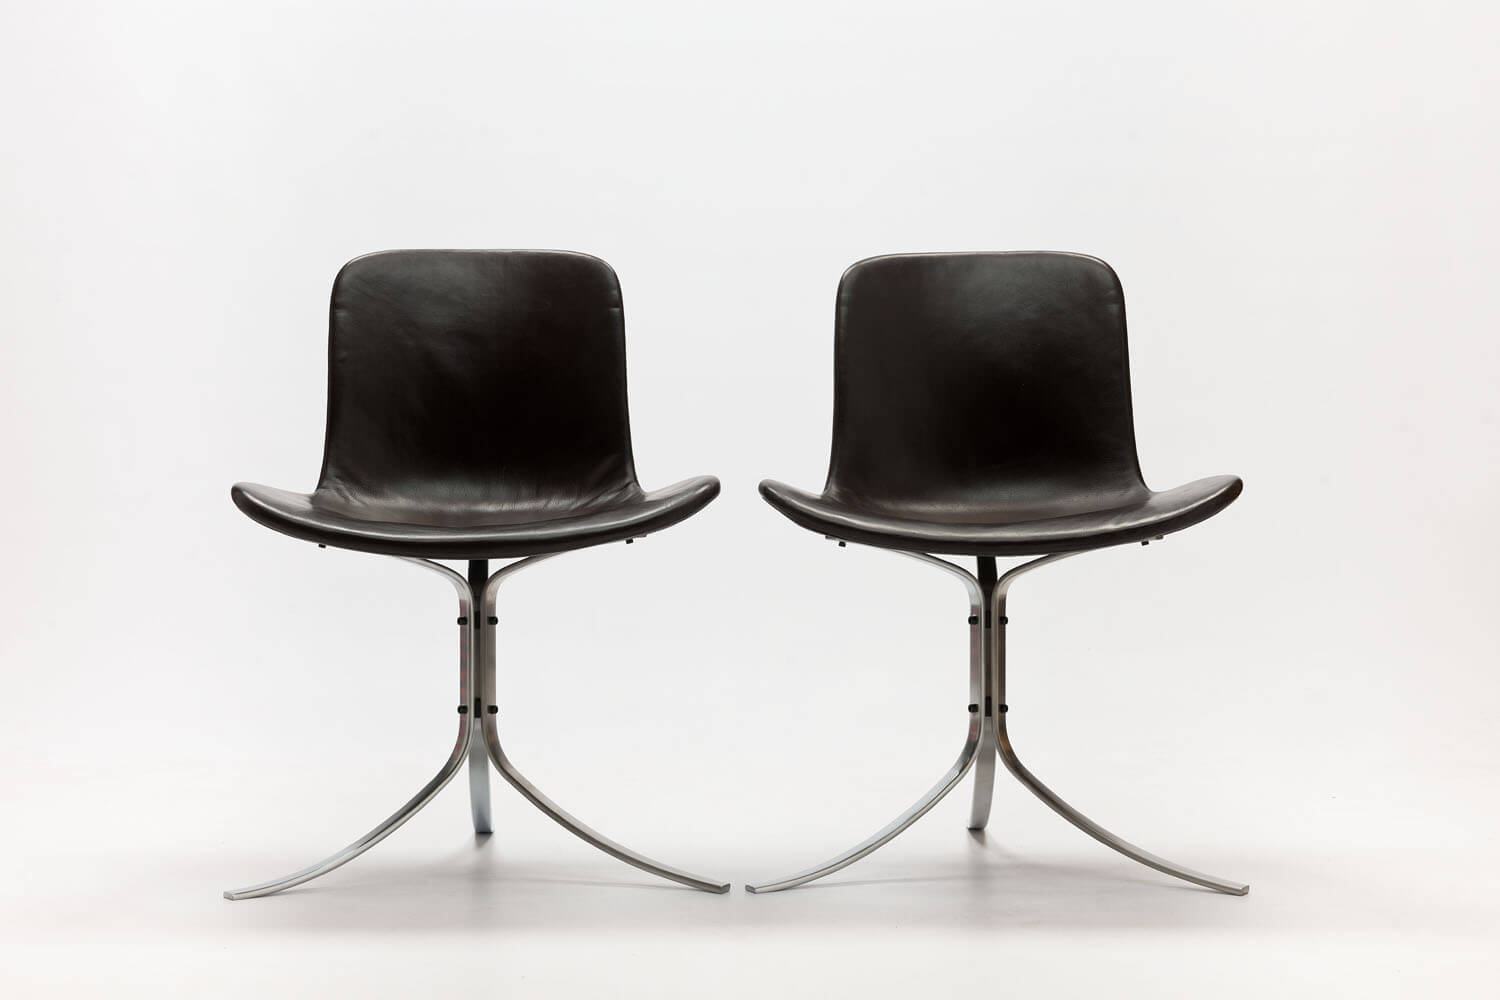 Vintage PK9 chairs